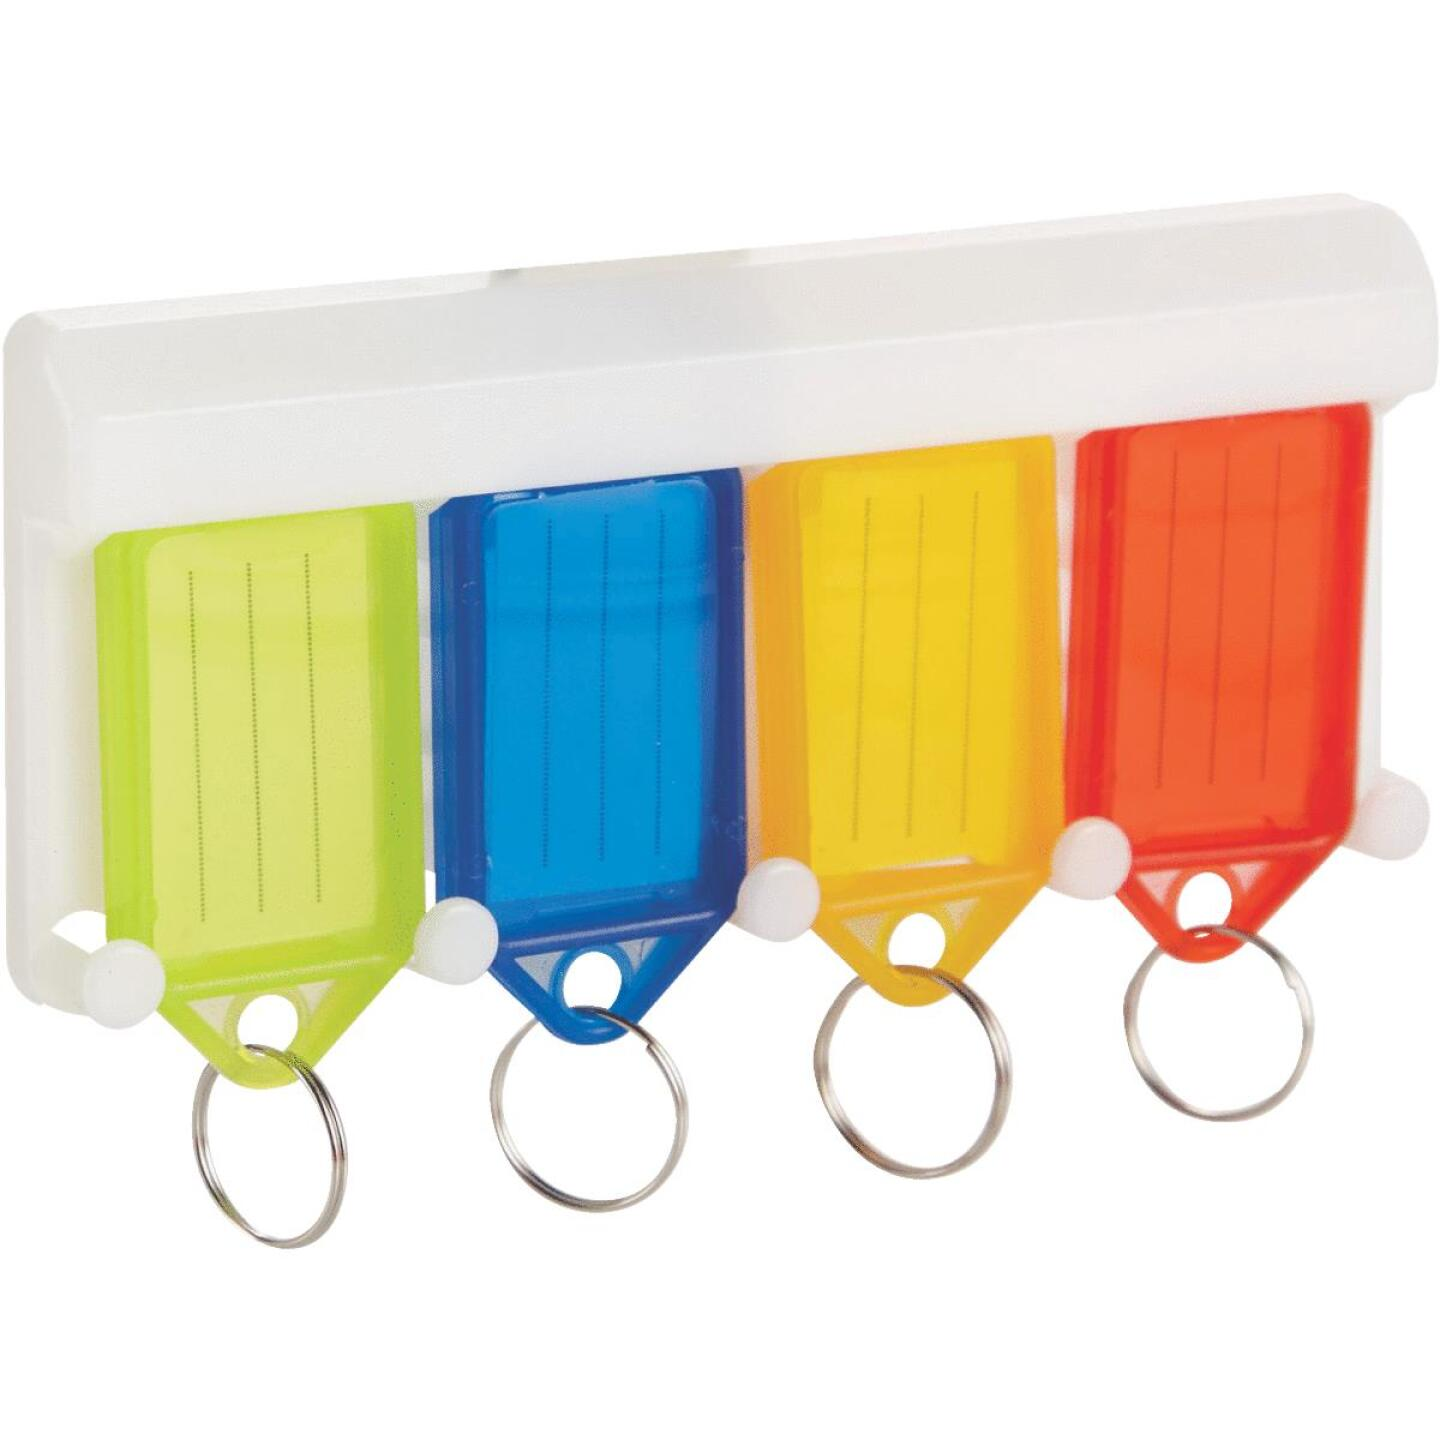 Smart Savers Keytag Rack (4-Key) Image 2